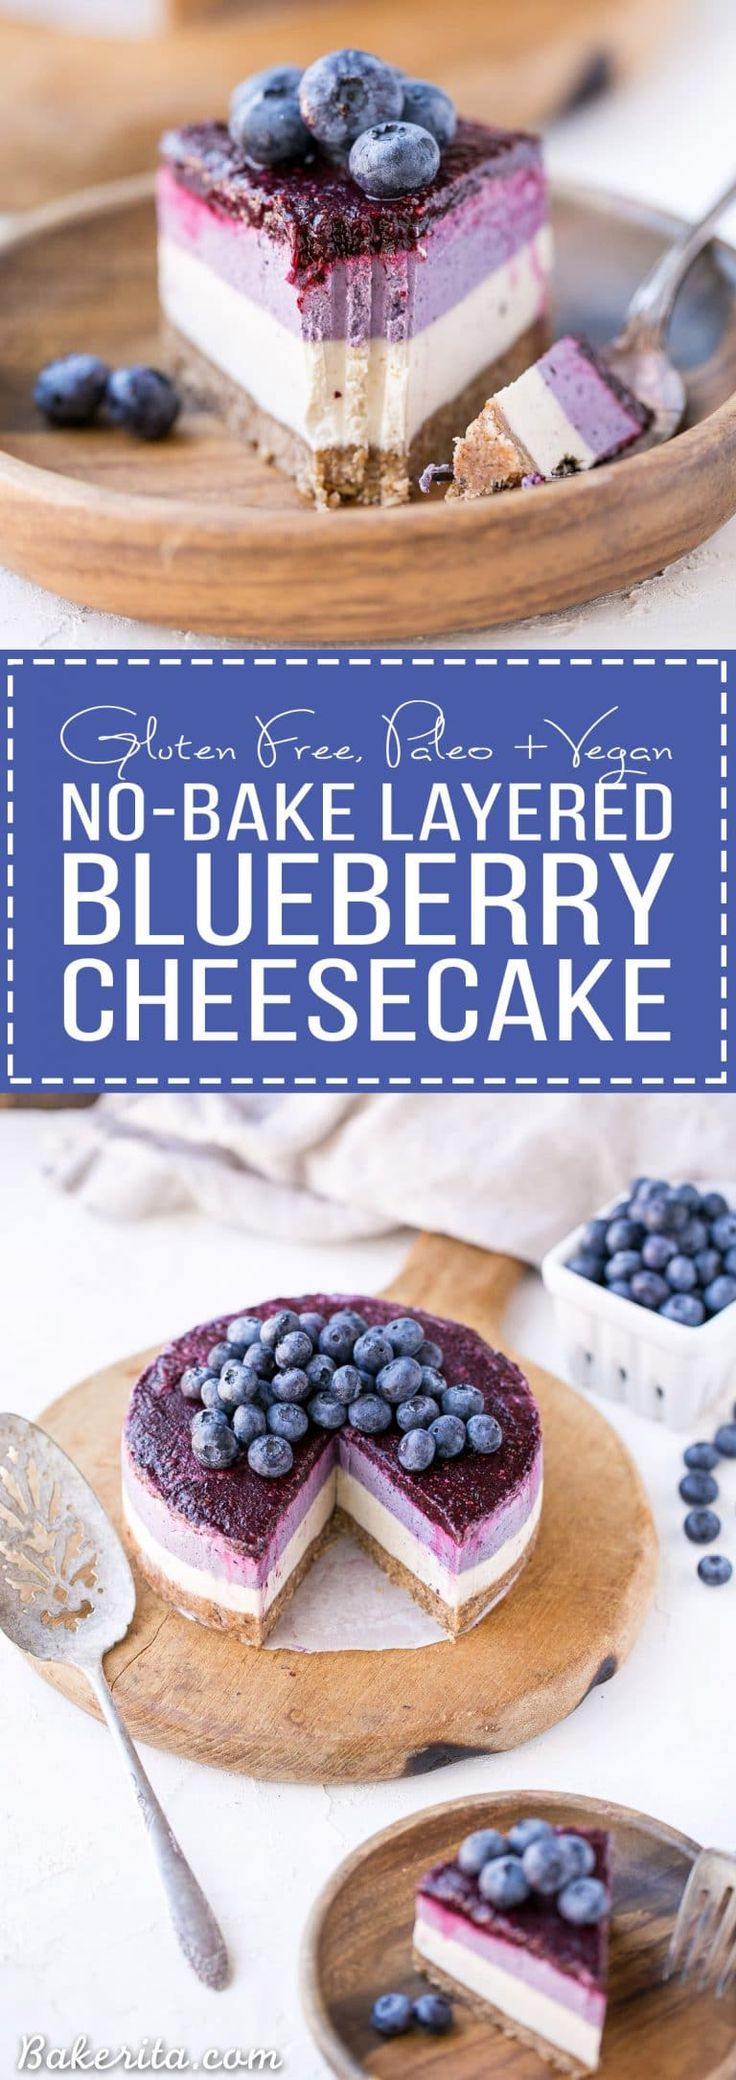 This No-Bake Layered Blueberry Cheesecake is a beautiful and easy-to-make Paleo-…